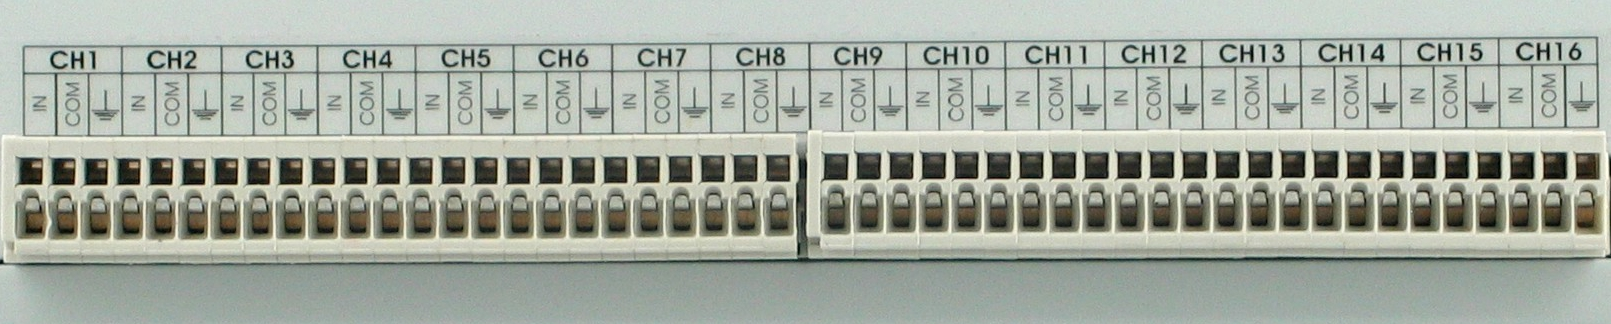 Monitoring system inputs